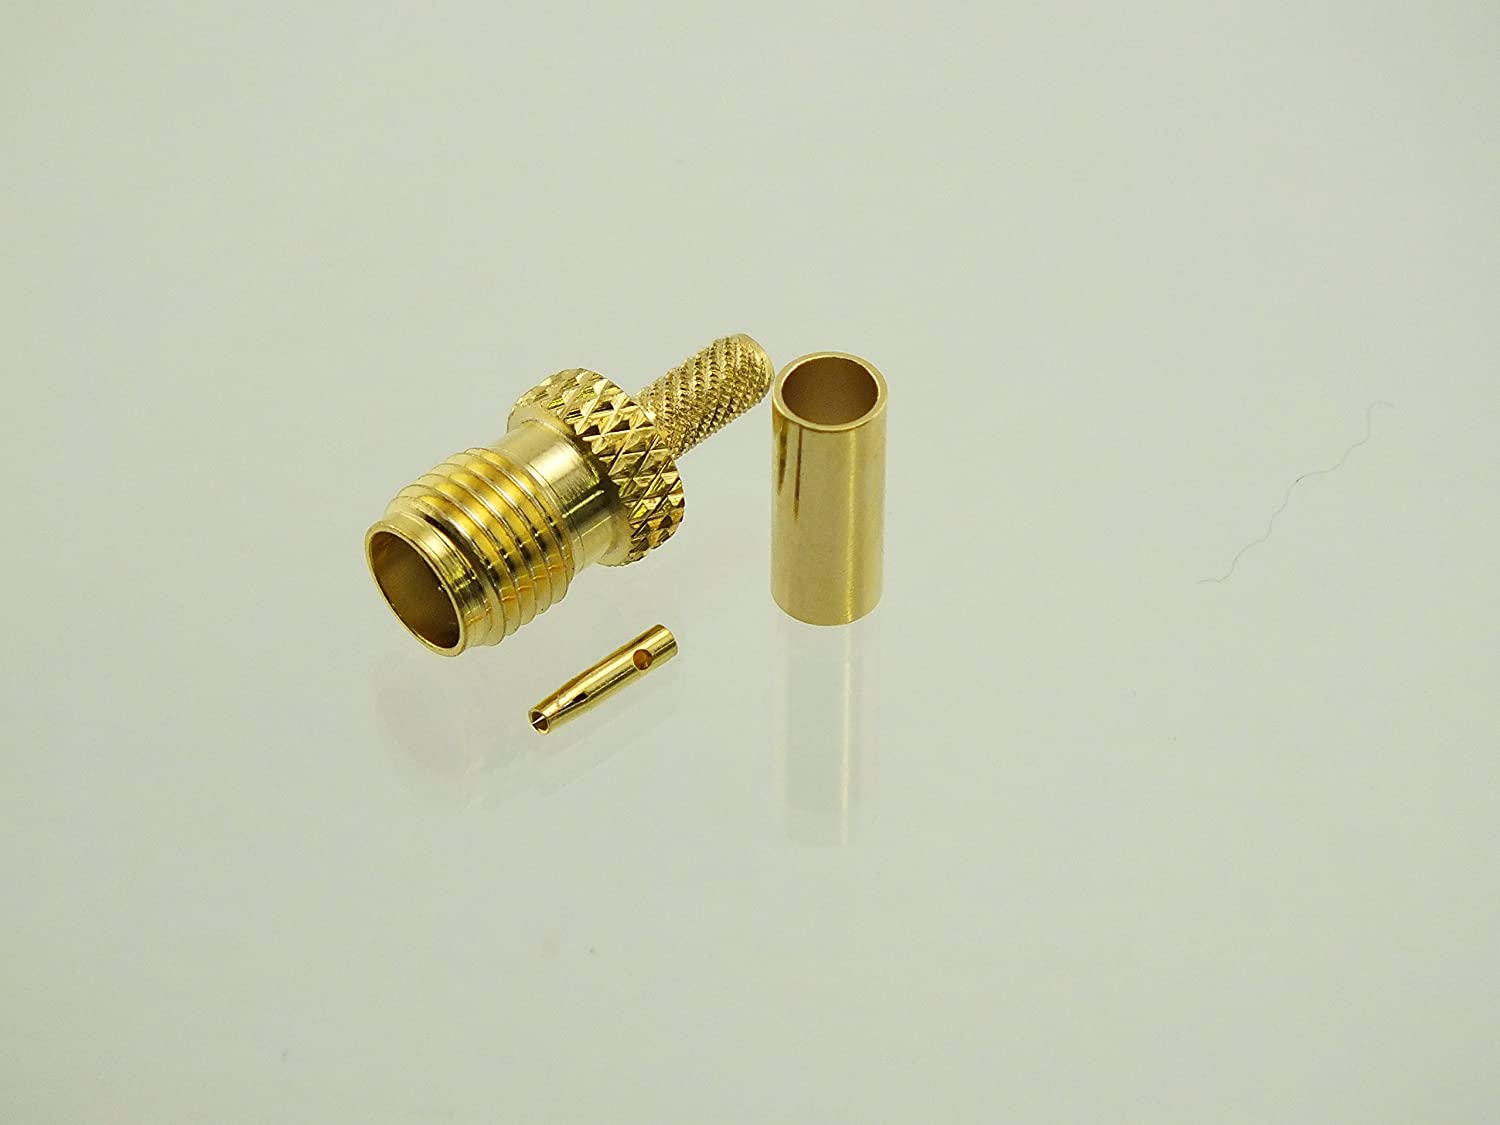 W5SWL Brand Premium Series SMA Female Gold Crimp Coax Connector fits RG-174 and LMR100 Type Cables 2-Pack